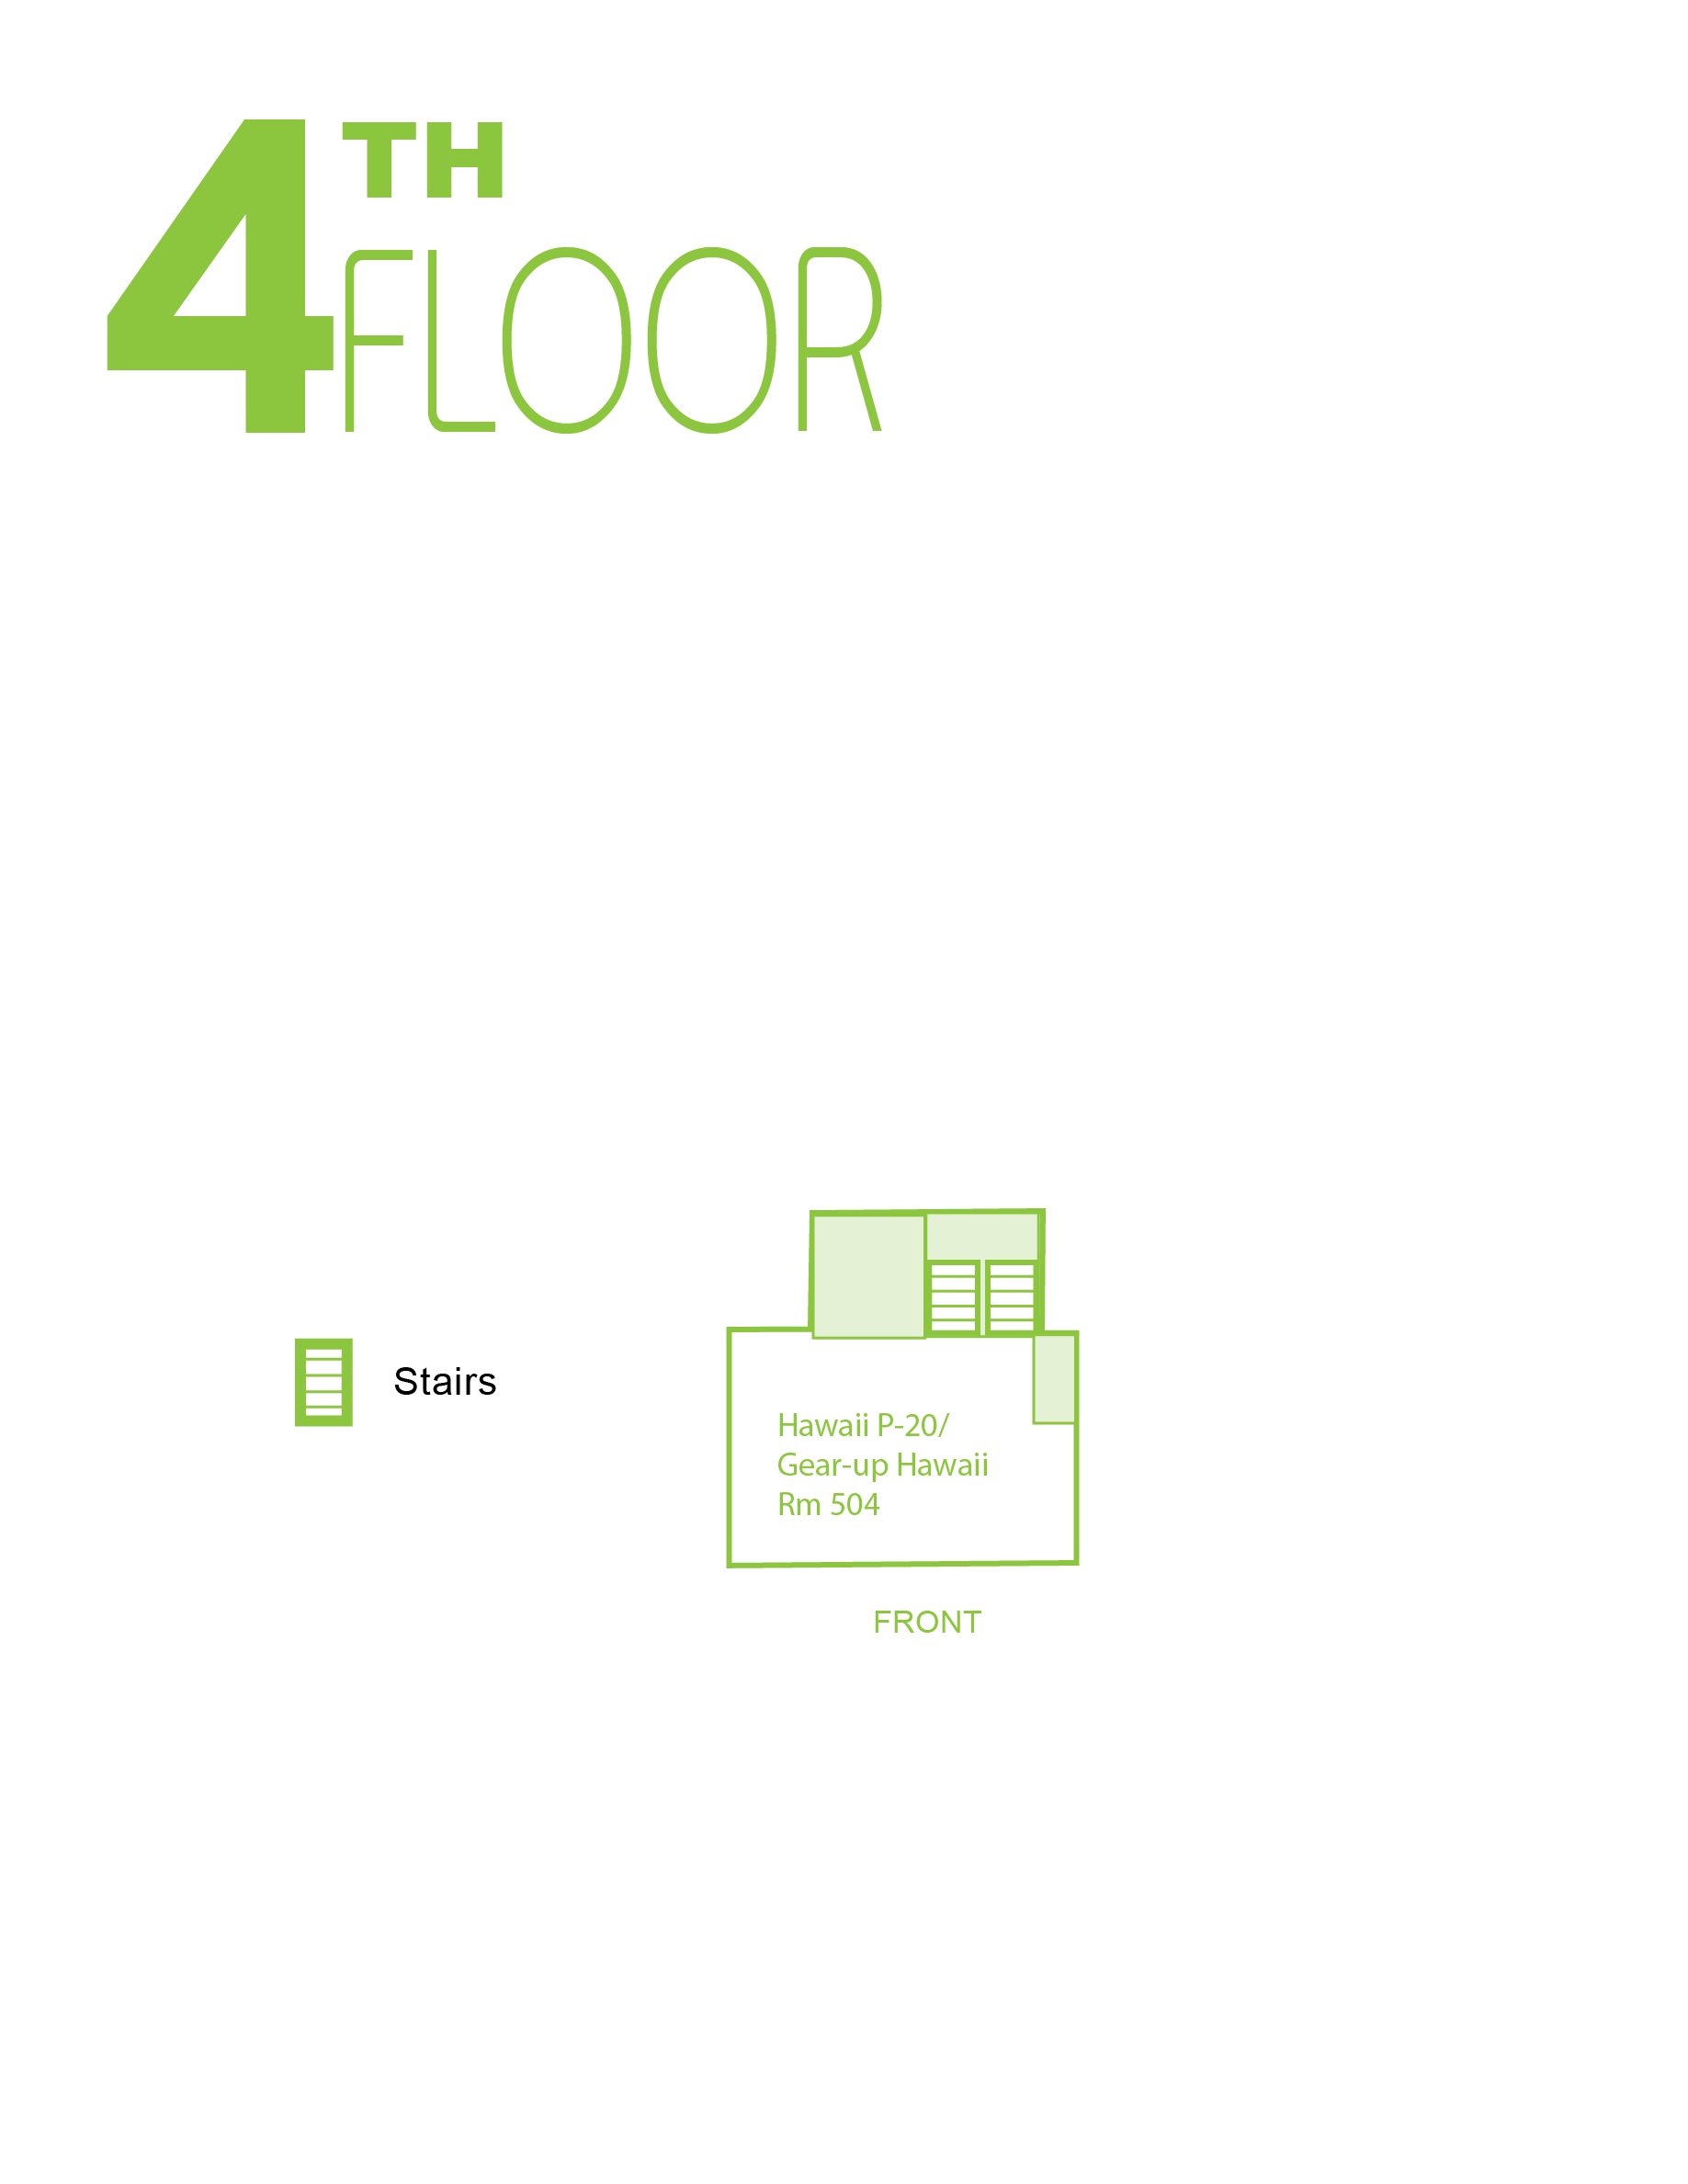 Sinclair fourth floor map